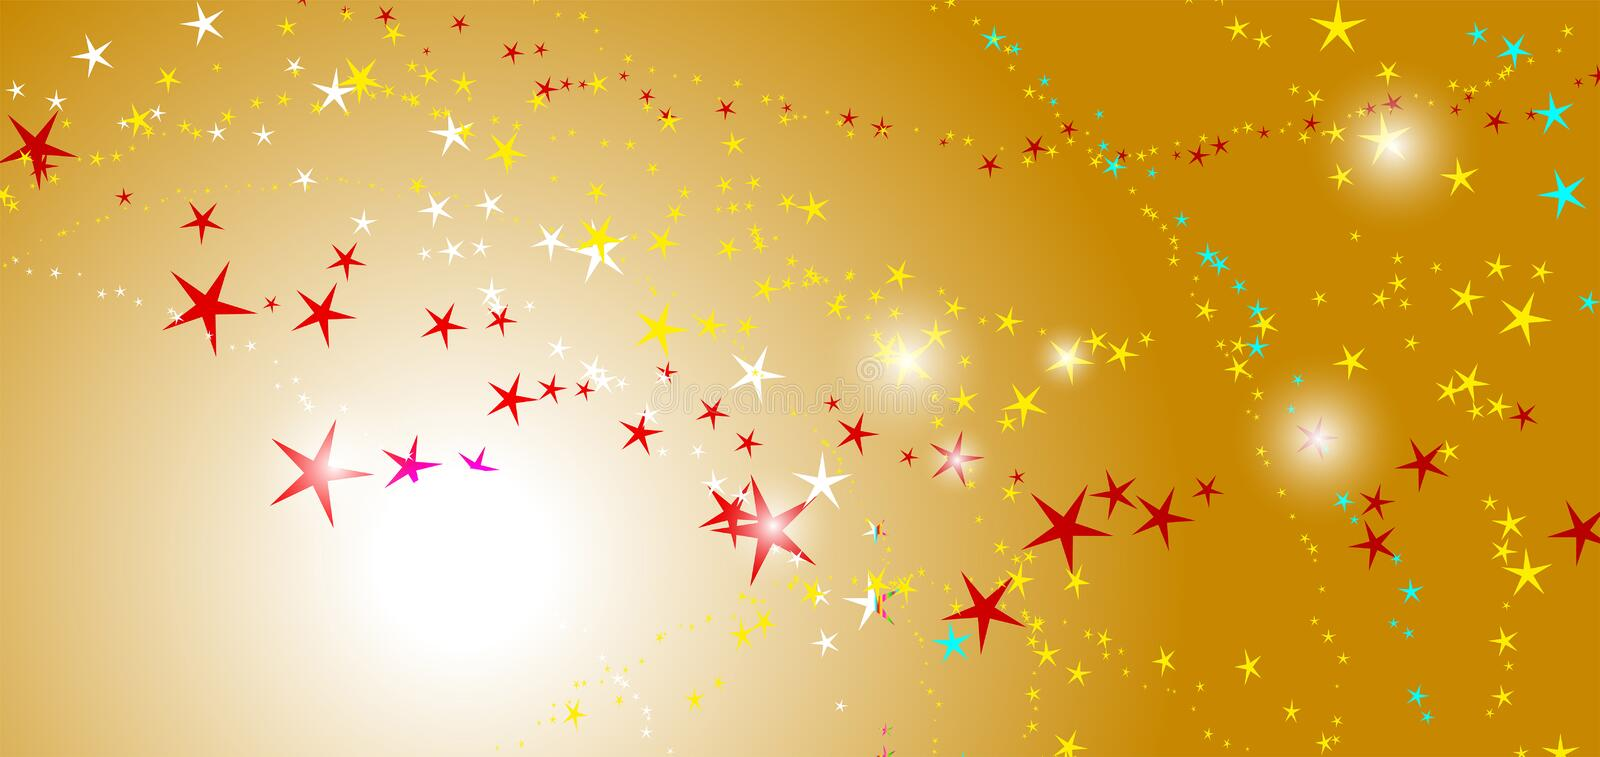 Abstract yellow background with stars. Starry background stock illustration